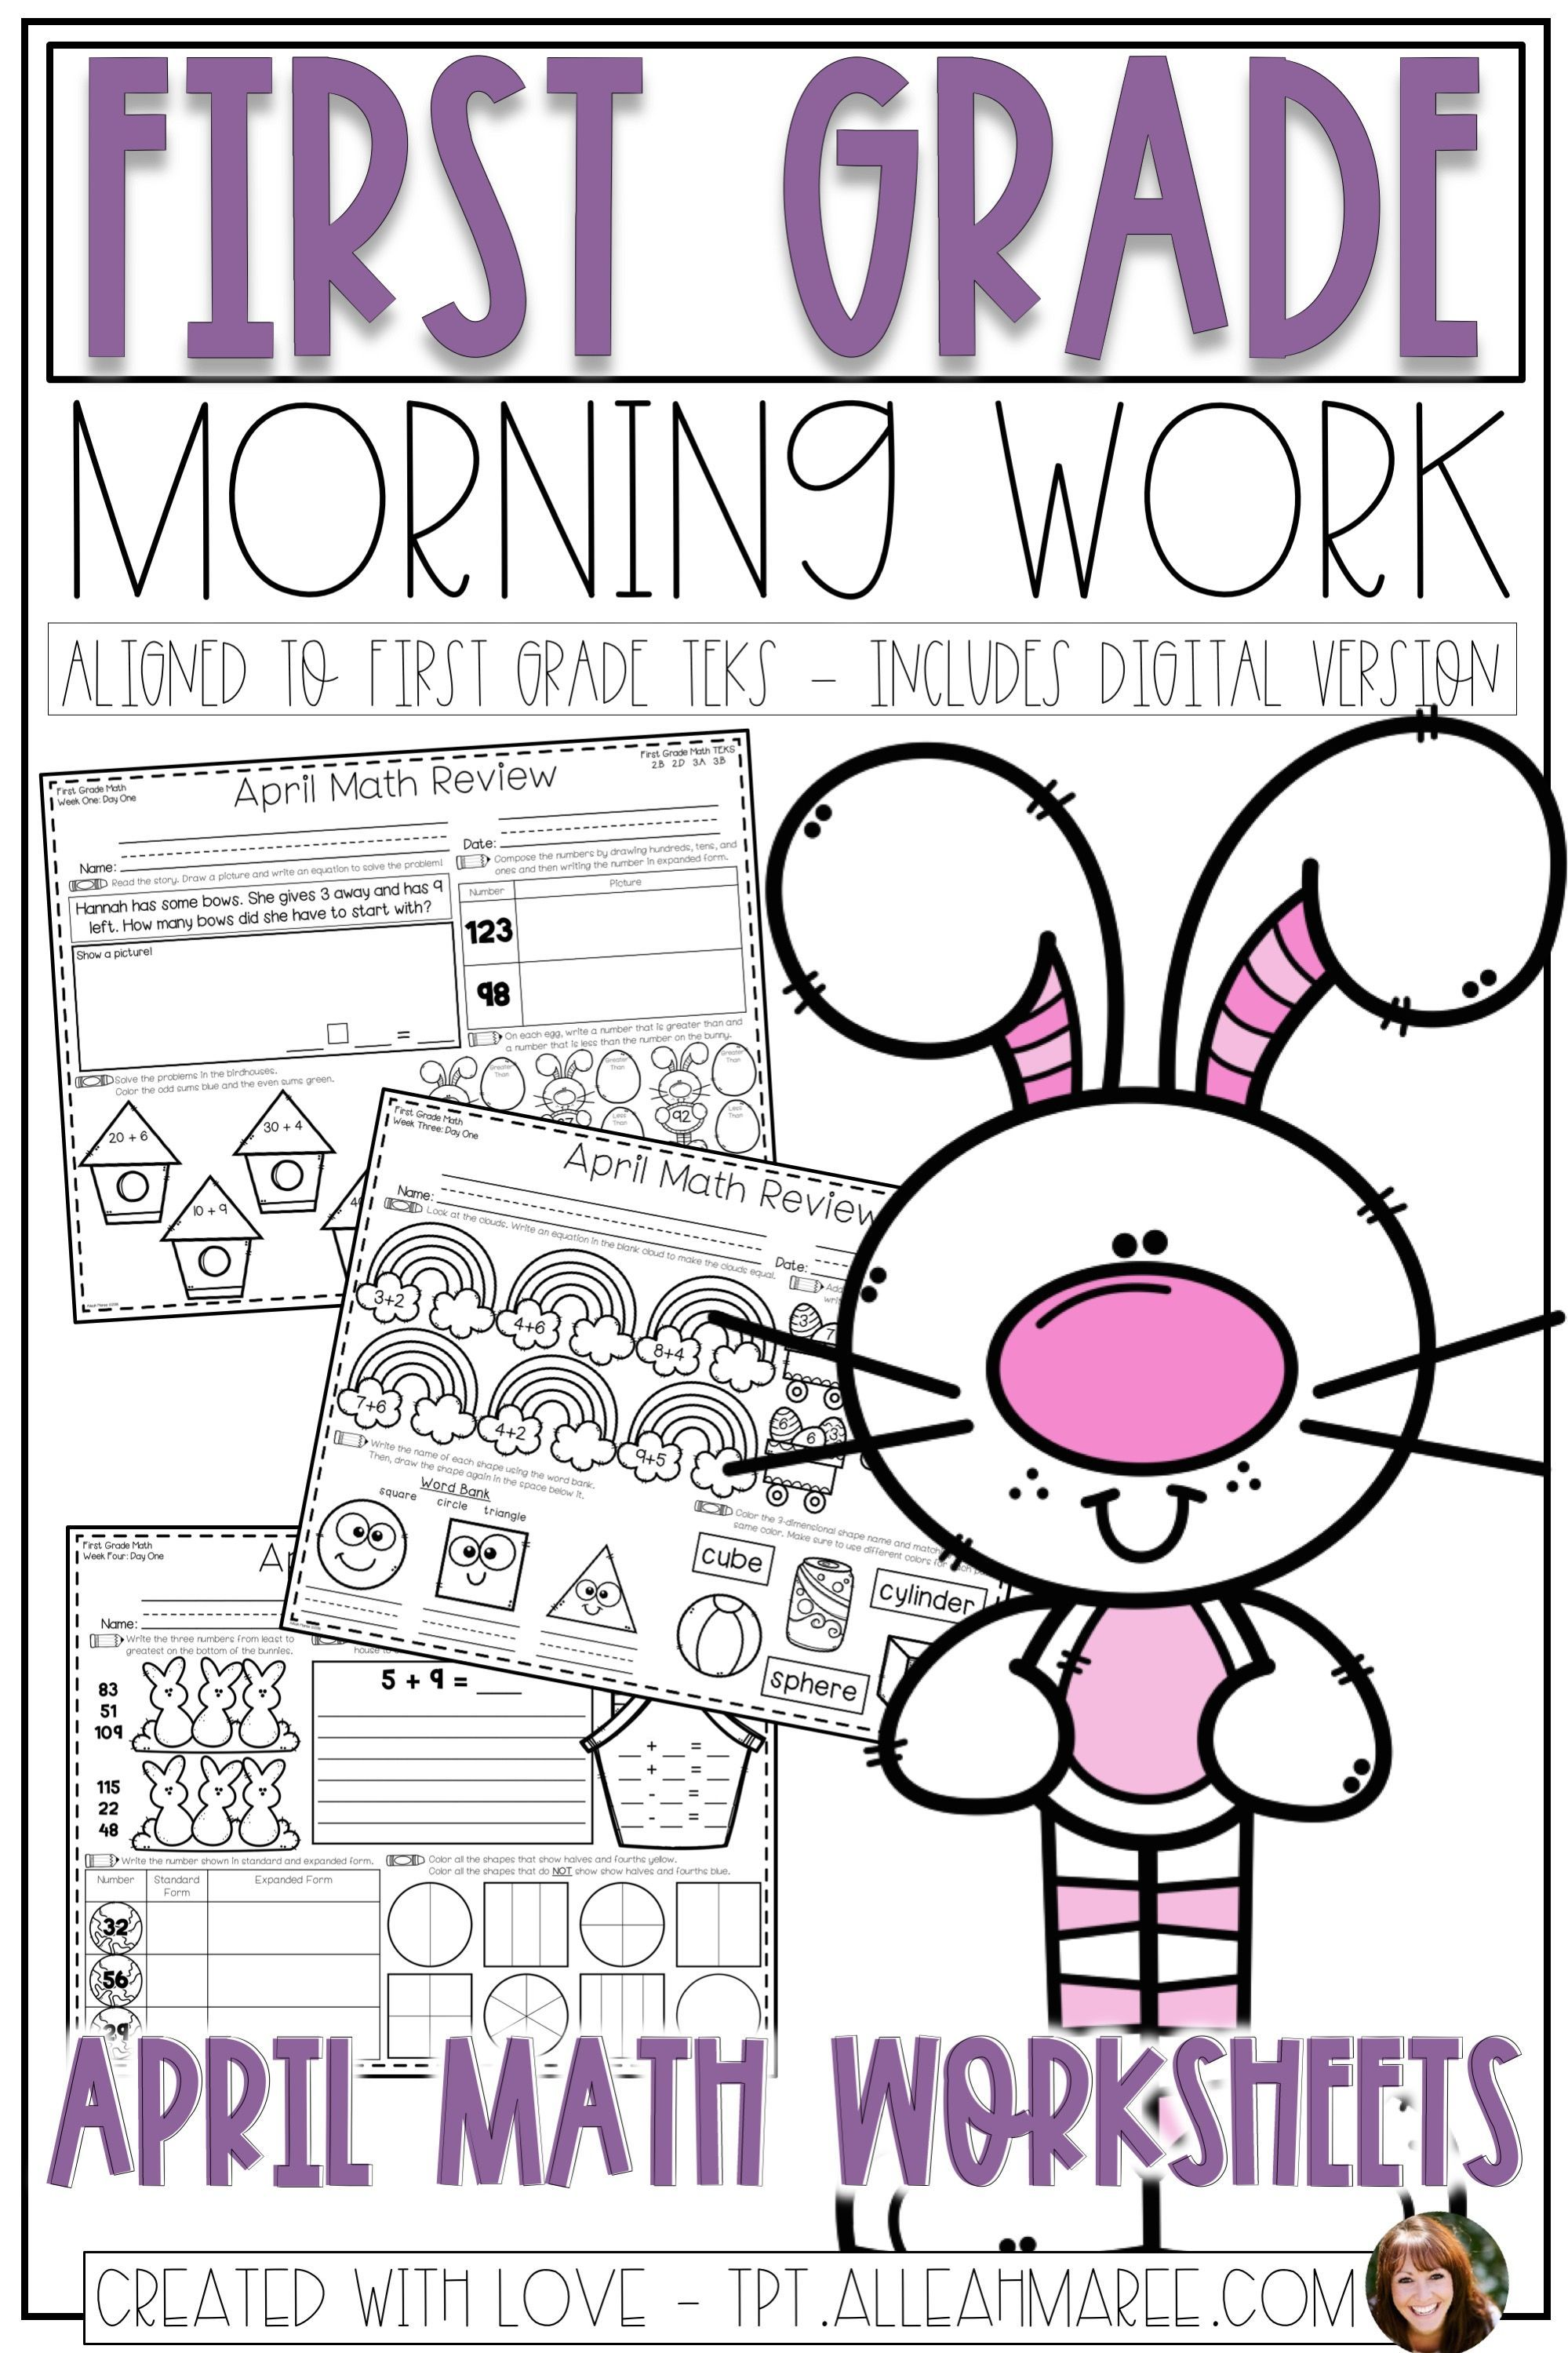 These Morning Work Worksheets Are The Perfect Math Activity For Your First Grade Students This Spring Click The Pic To Math Review Math Review Worksheets Math [ 2999 x 1999 Pixel ]